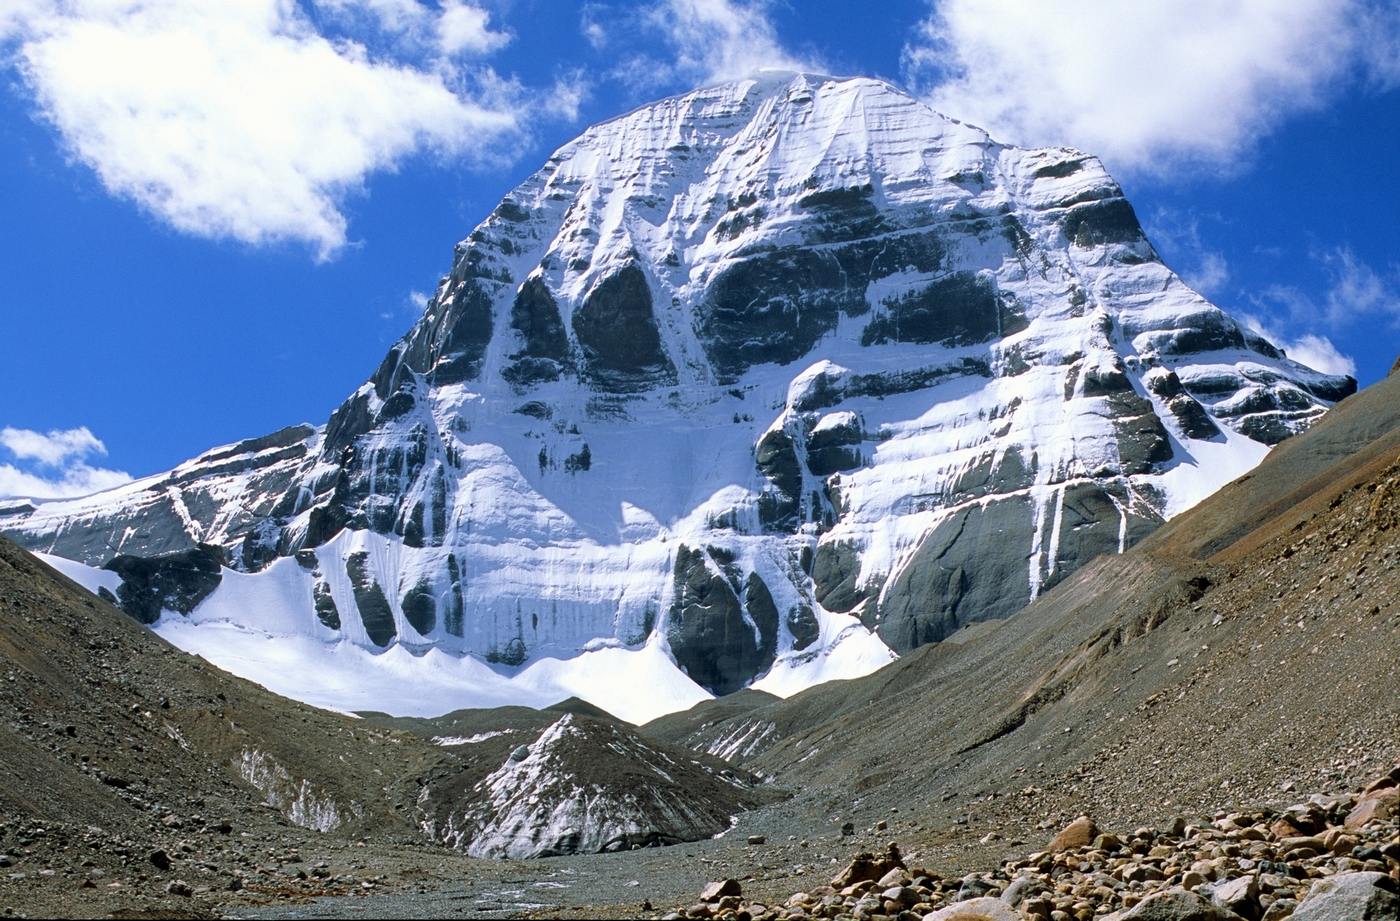 Himalaya Hd Wallpaper Mt Kailash Tour Mecca For Buddhists Hindus And Jains